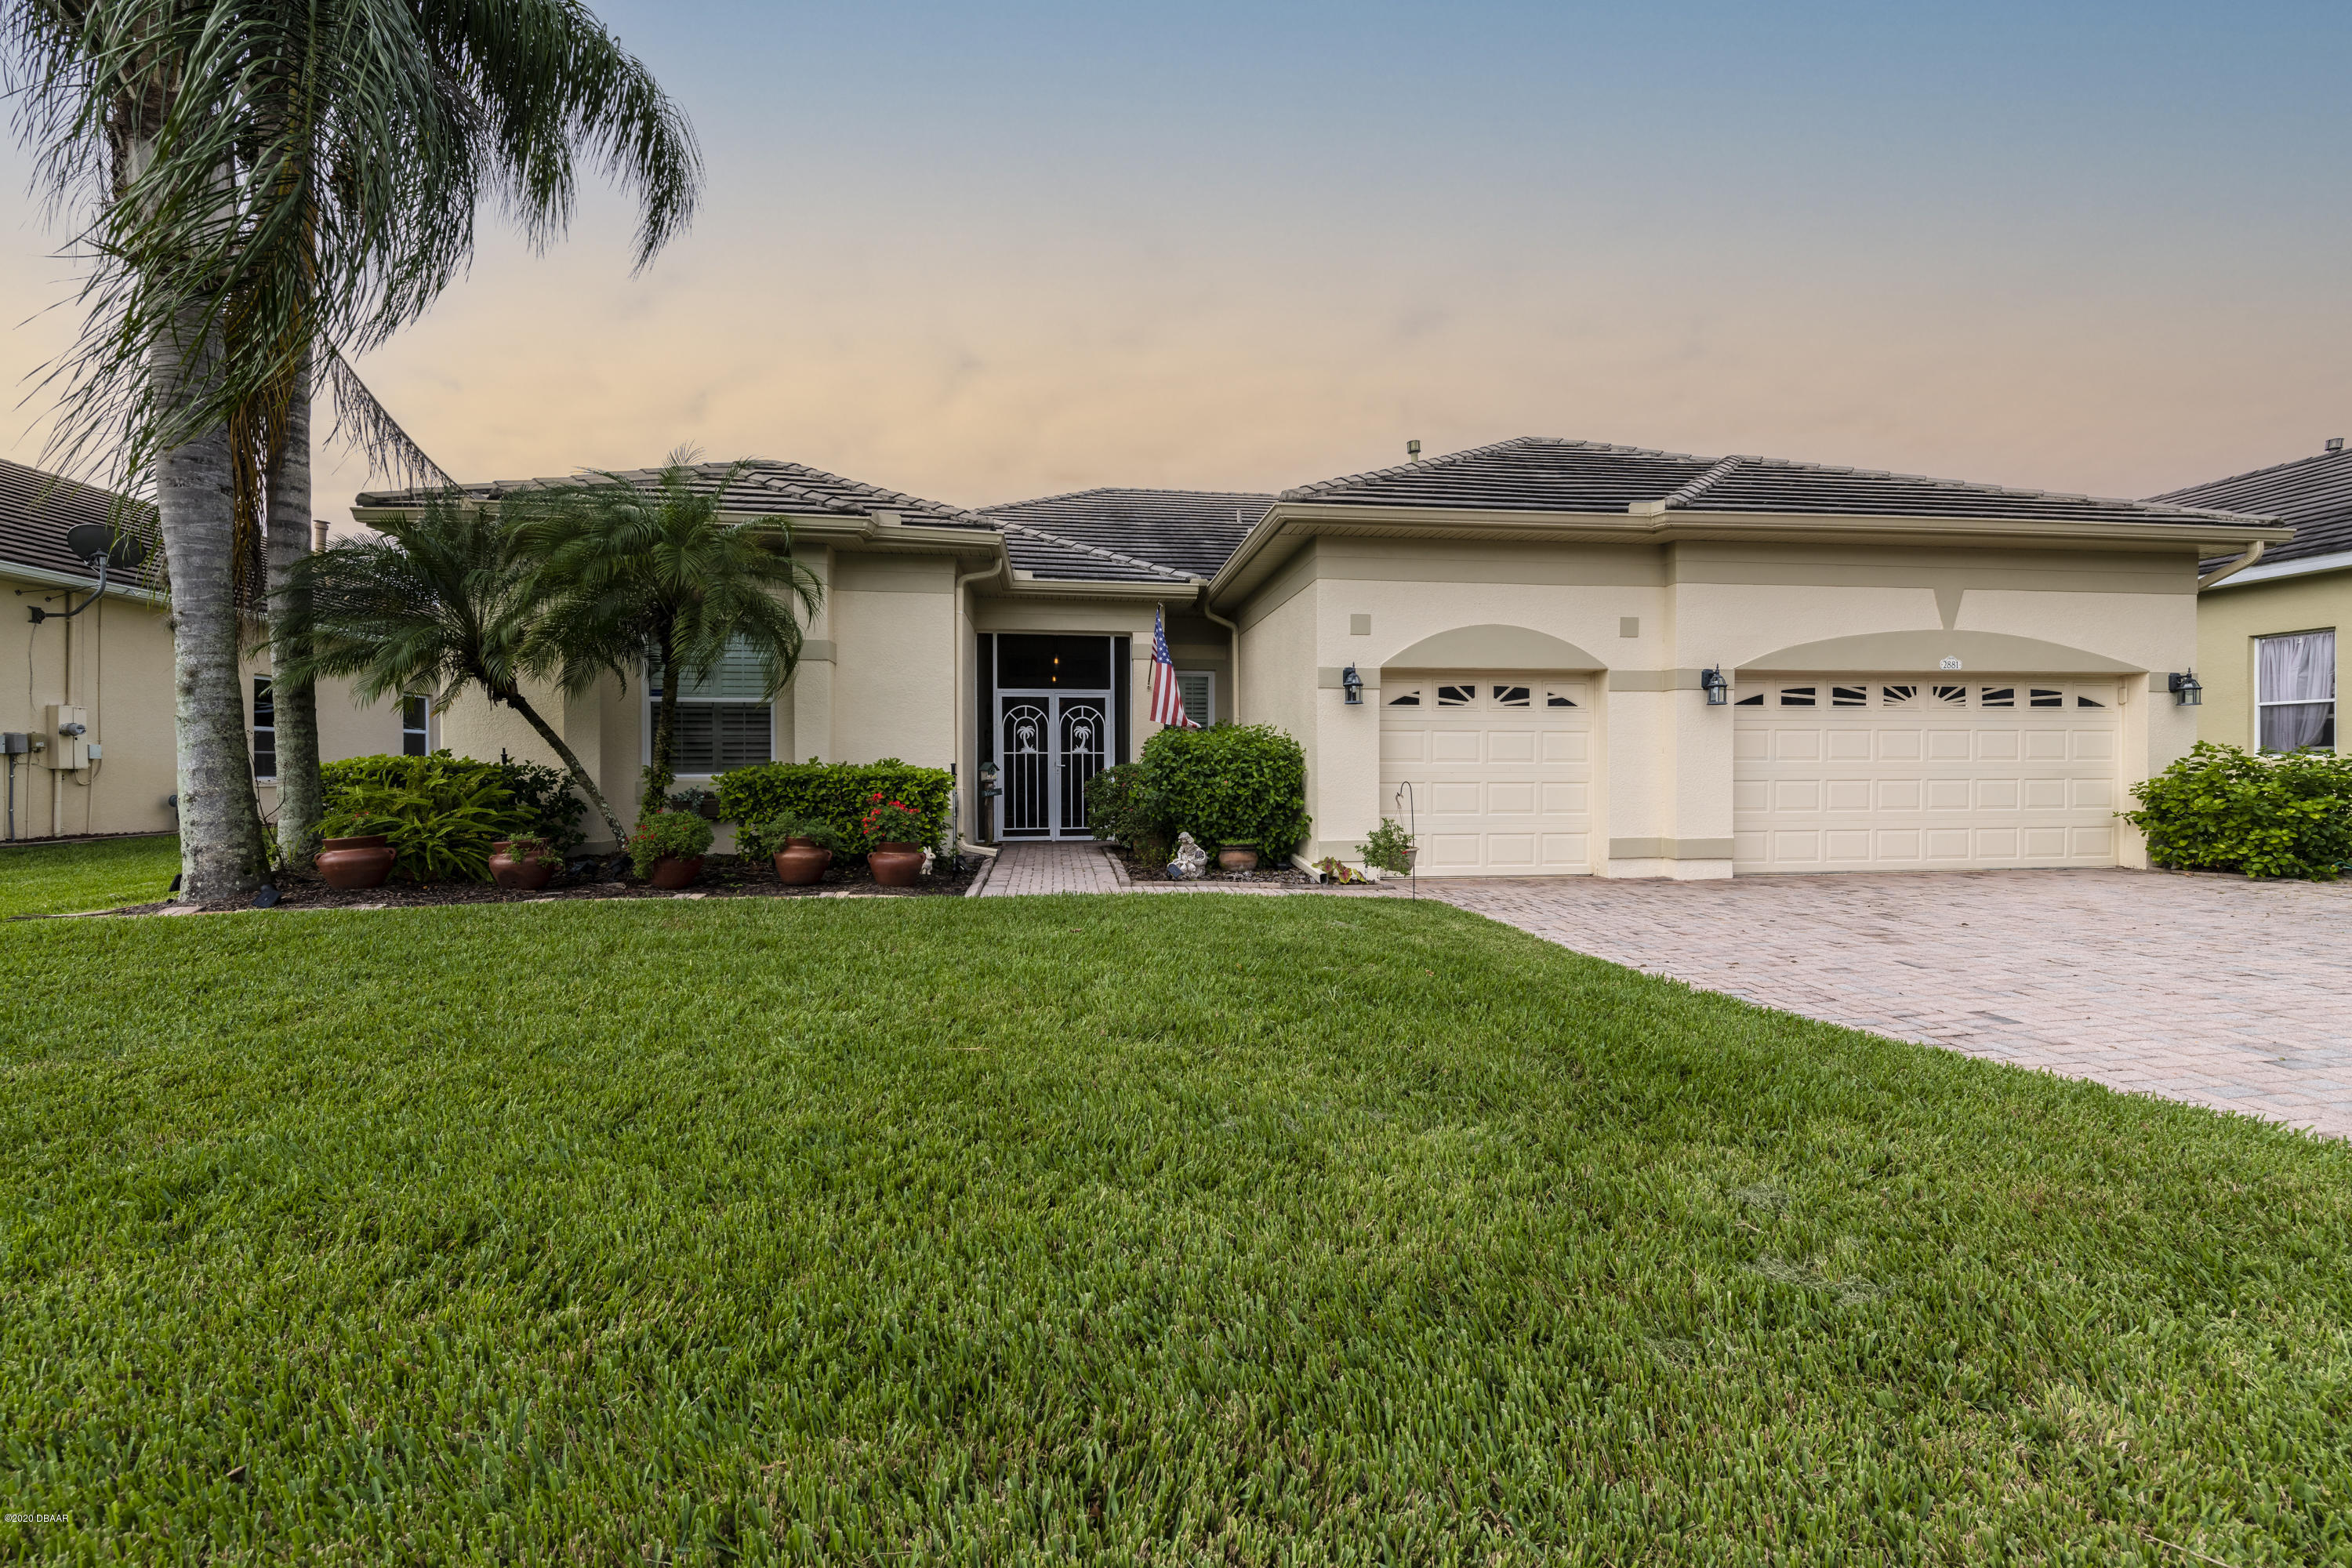 Details for 2881 Highland View Circle, Clermont, FL 34711